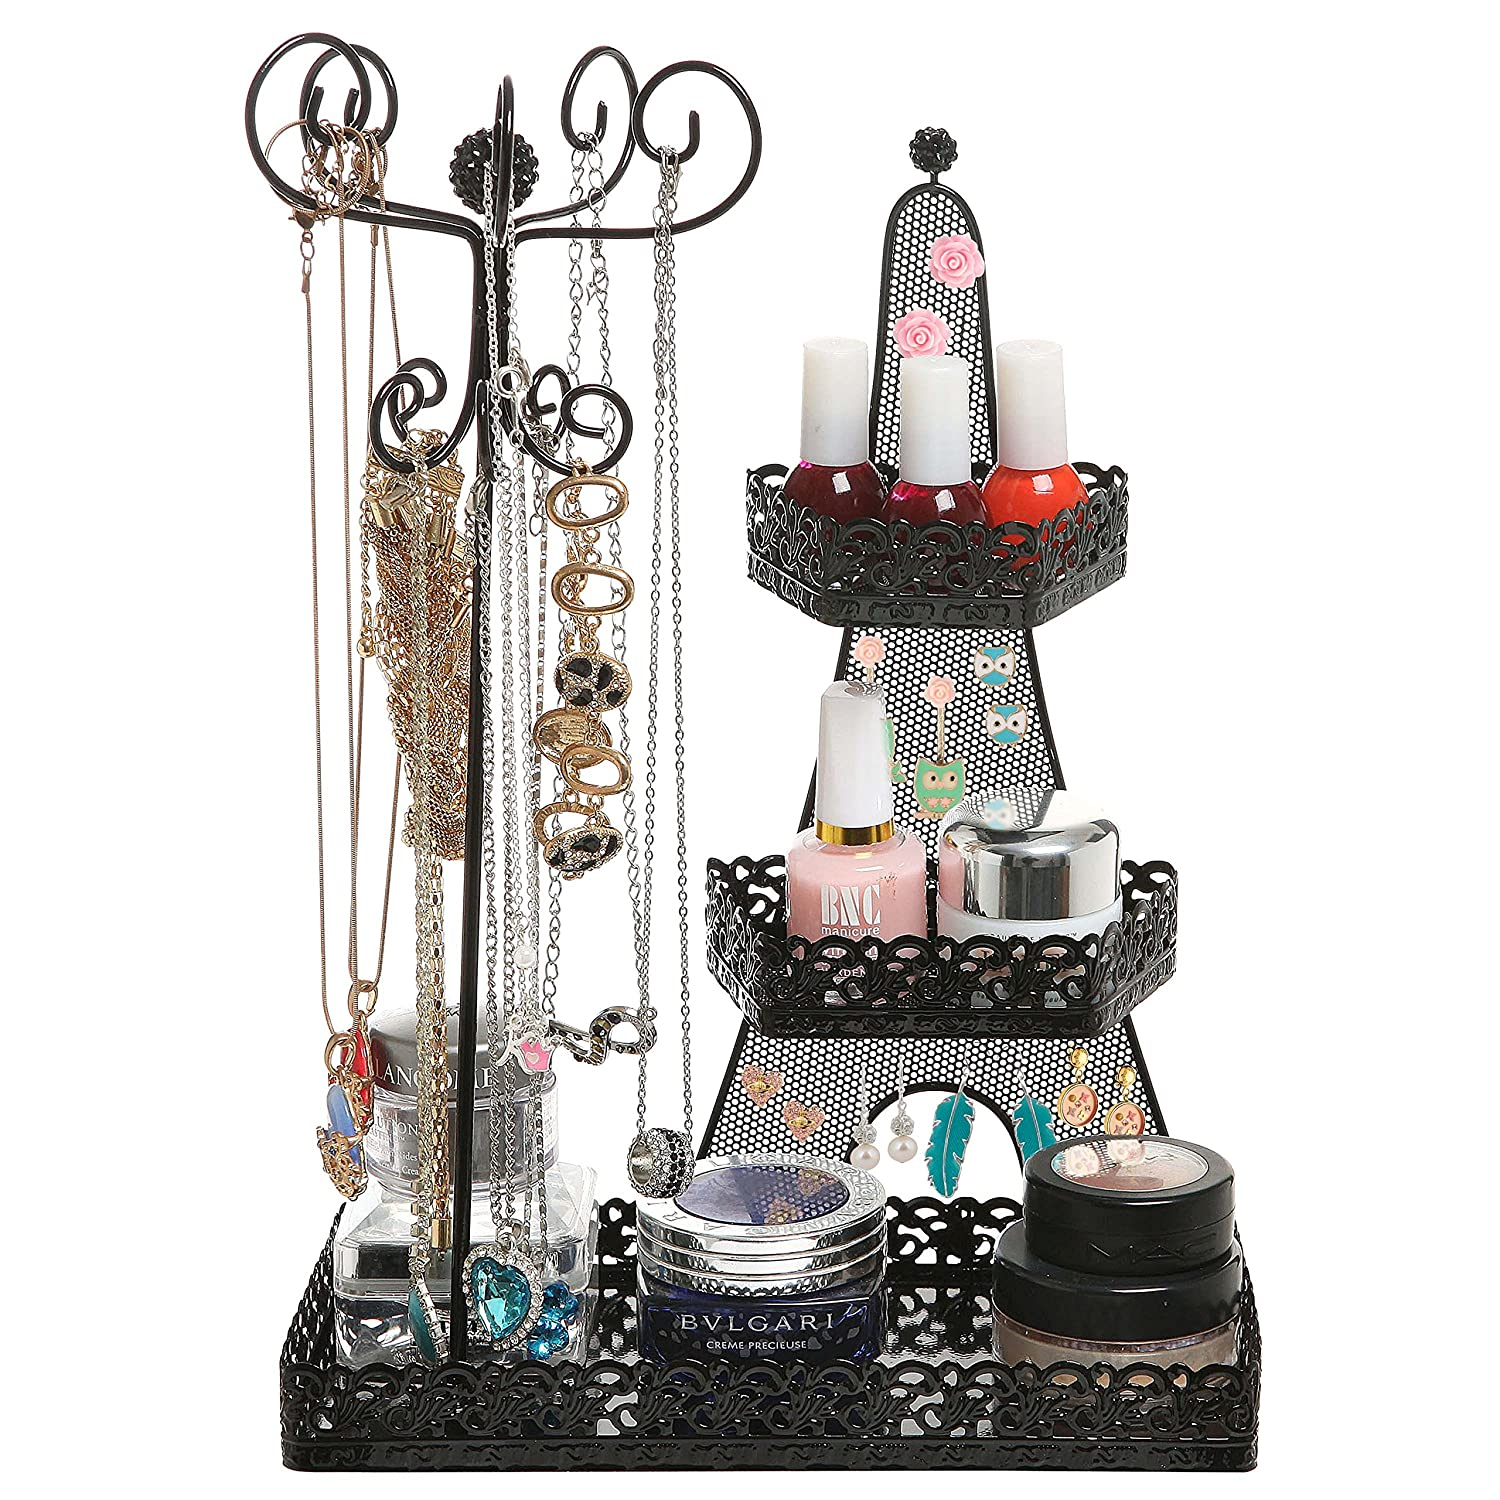 3 Tier Black Metal Makeup Organizer Rack / Necklace Jewelry Hanger / Nail Polish Display Stand - MyGift